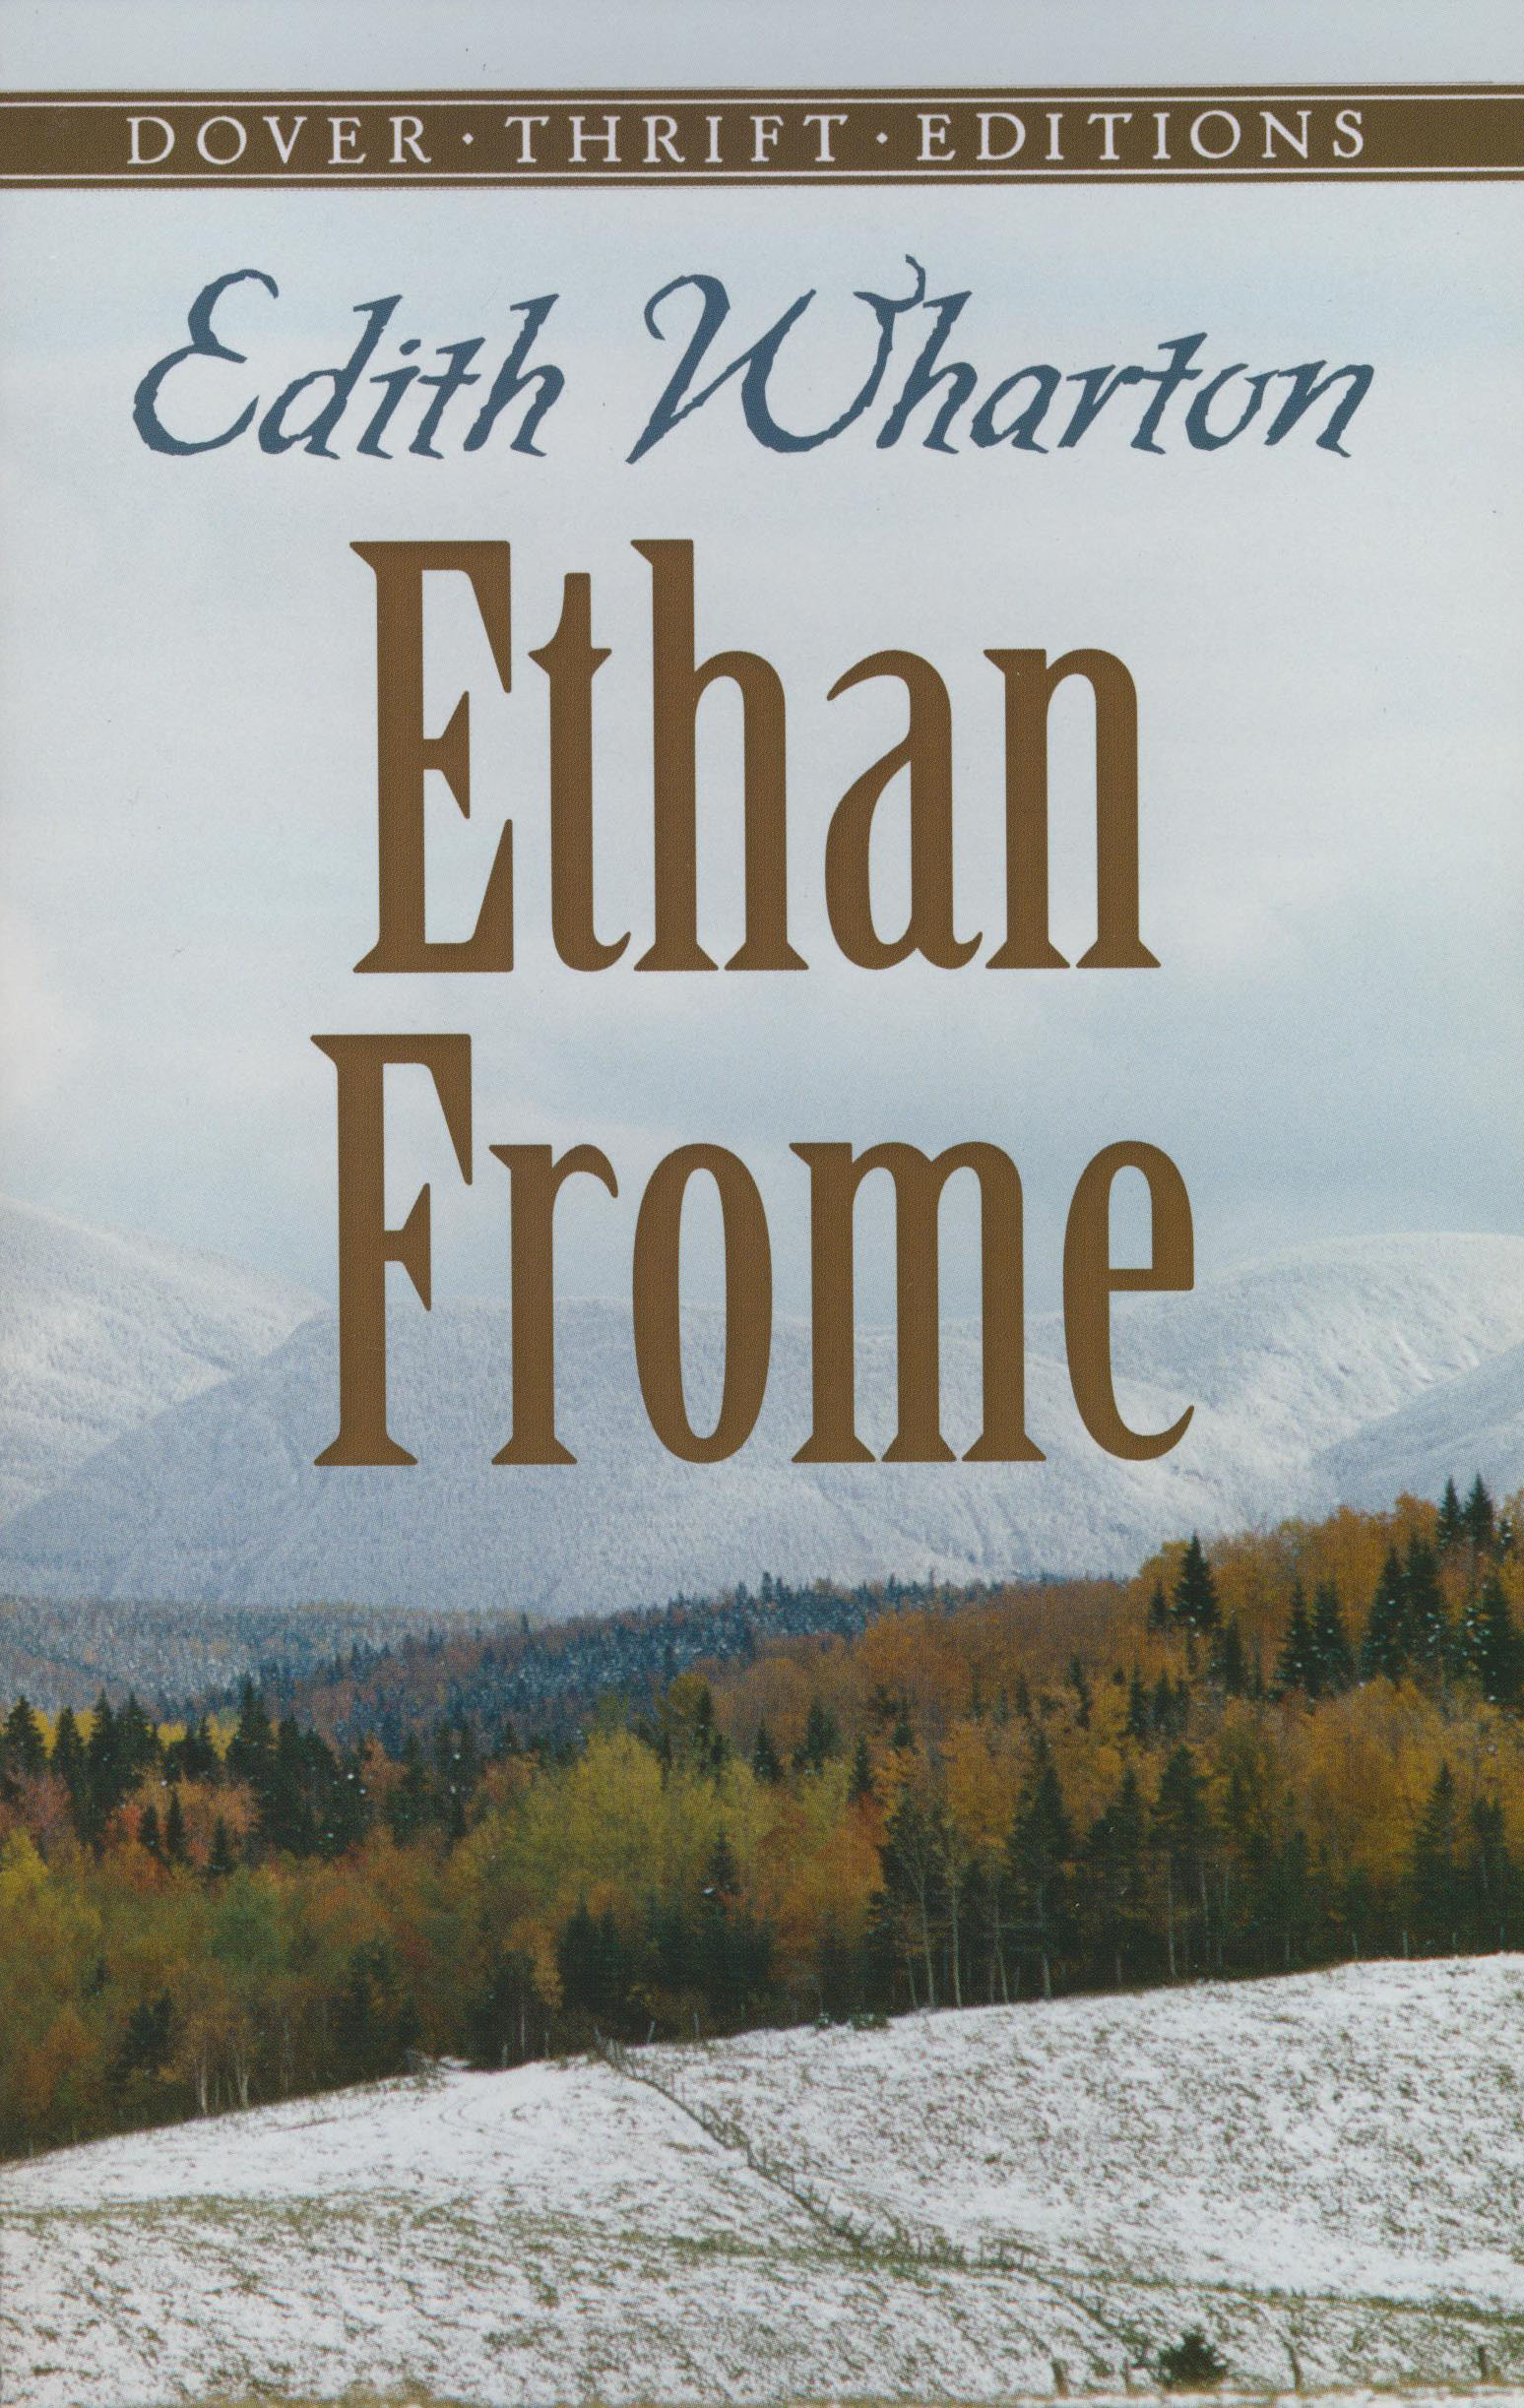 a focus on the character ethan frome in edith whartons novel ethan frome Critical responses to roman fever see also the current bibliography on short stories and the bibliography on roman fever the following summaries and quotations.